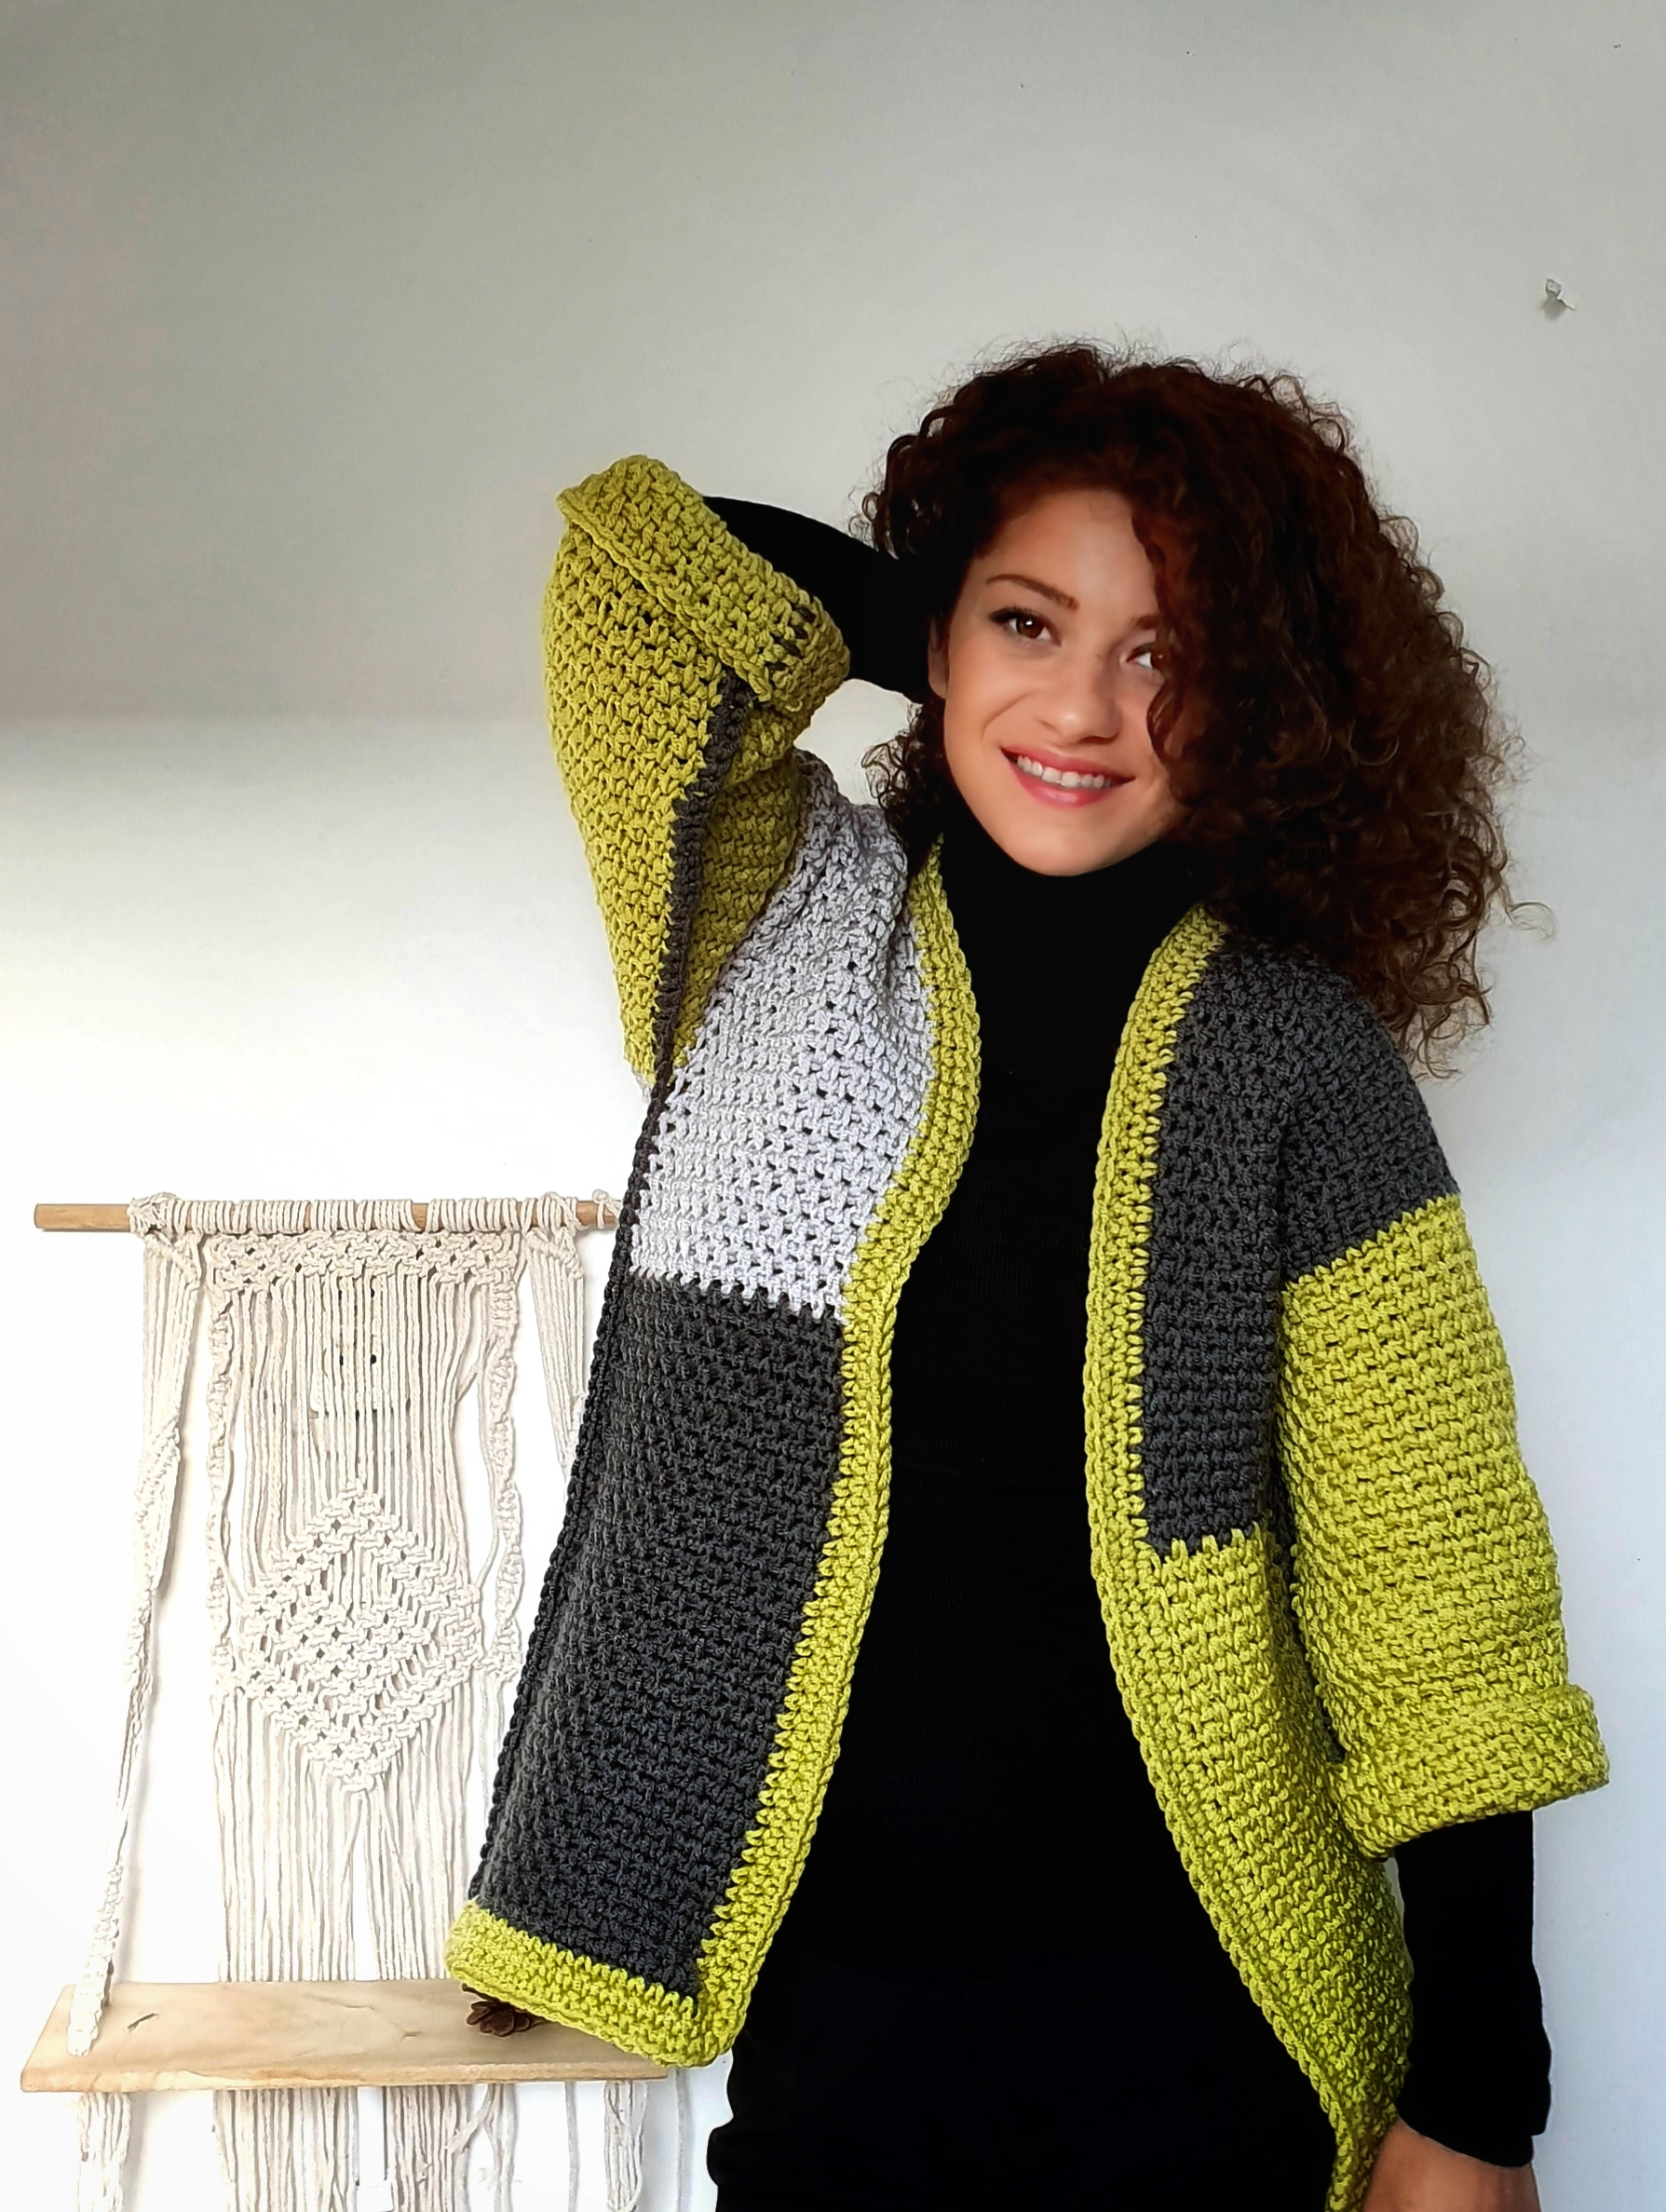 Pistachio Amid Rocks Jacket.Free Crochet Pattern and Video Tutorial